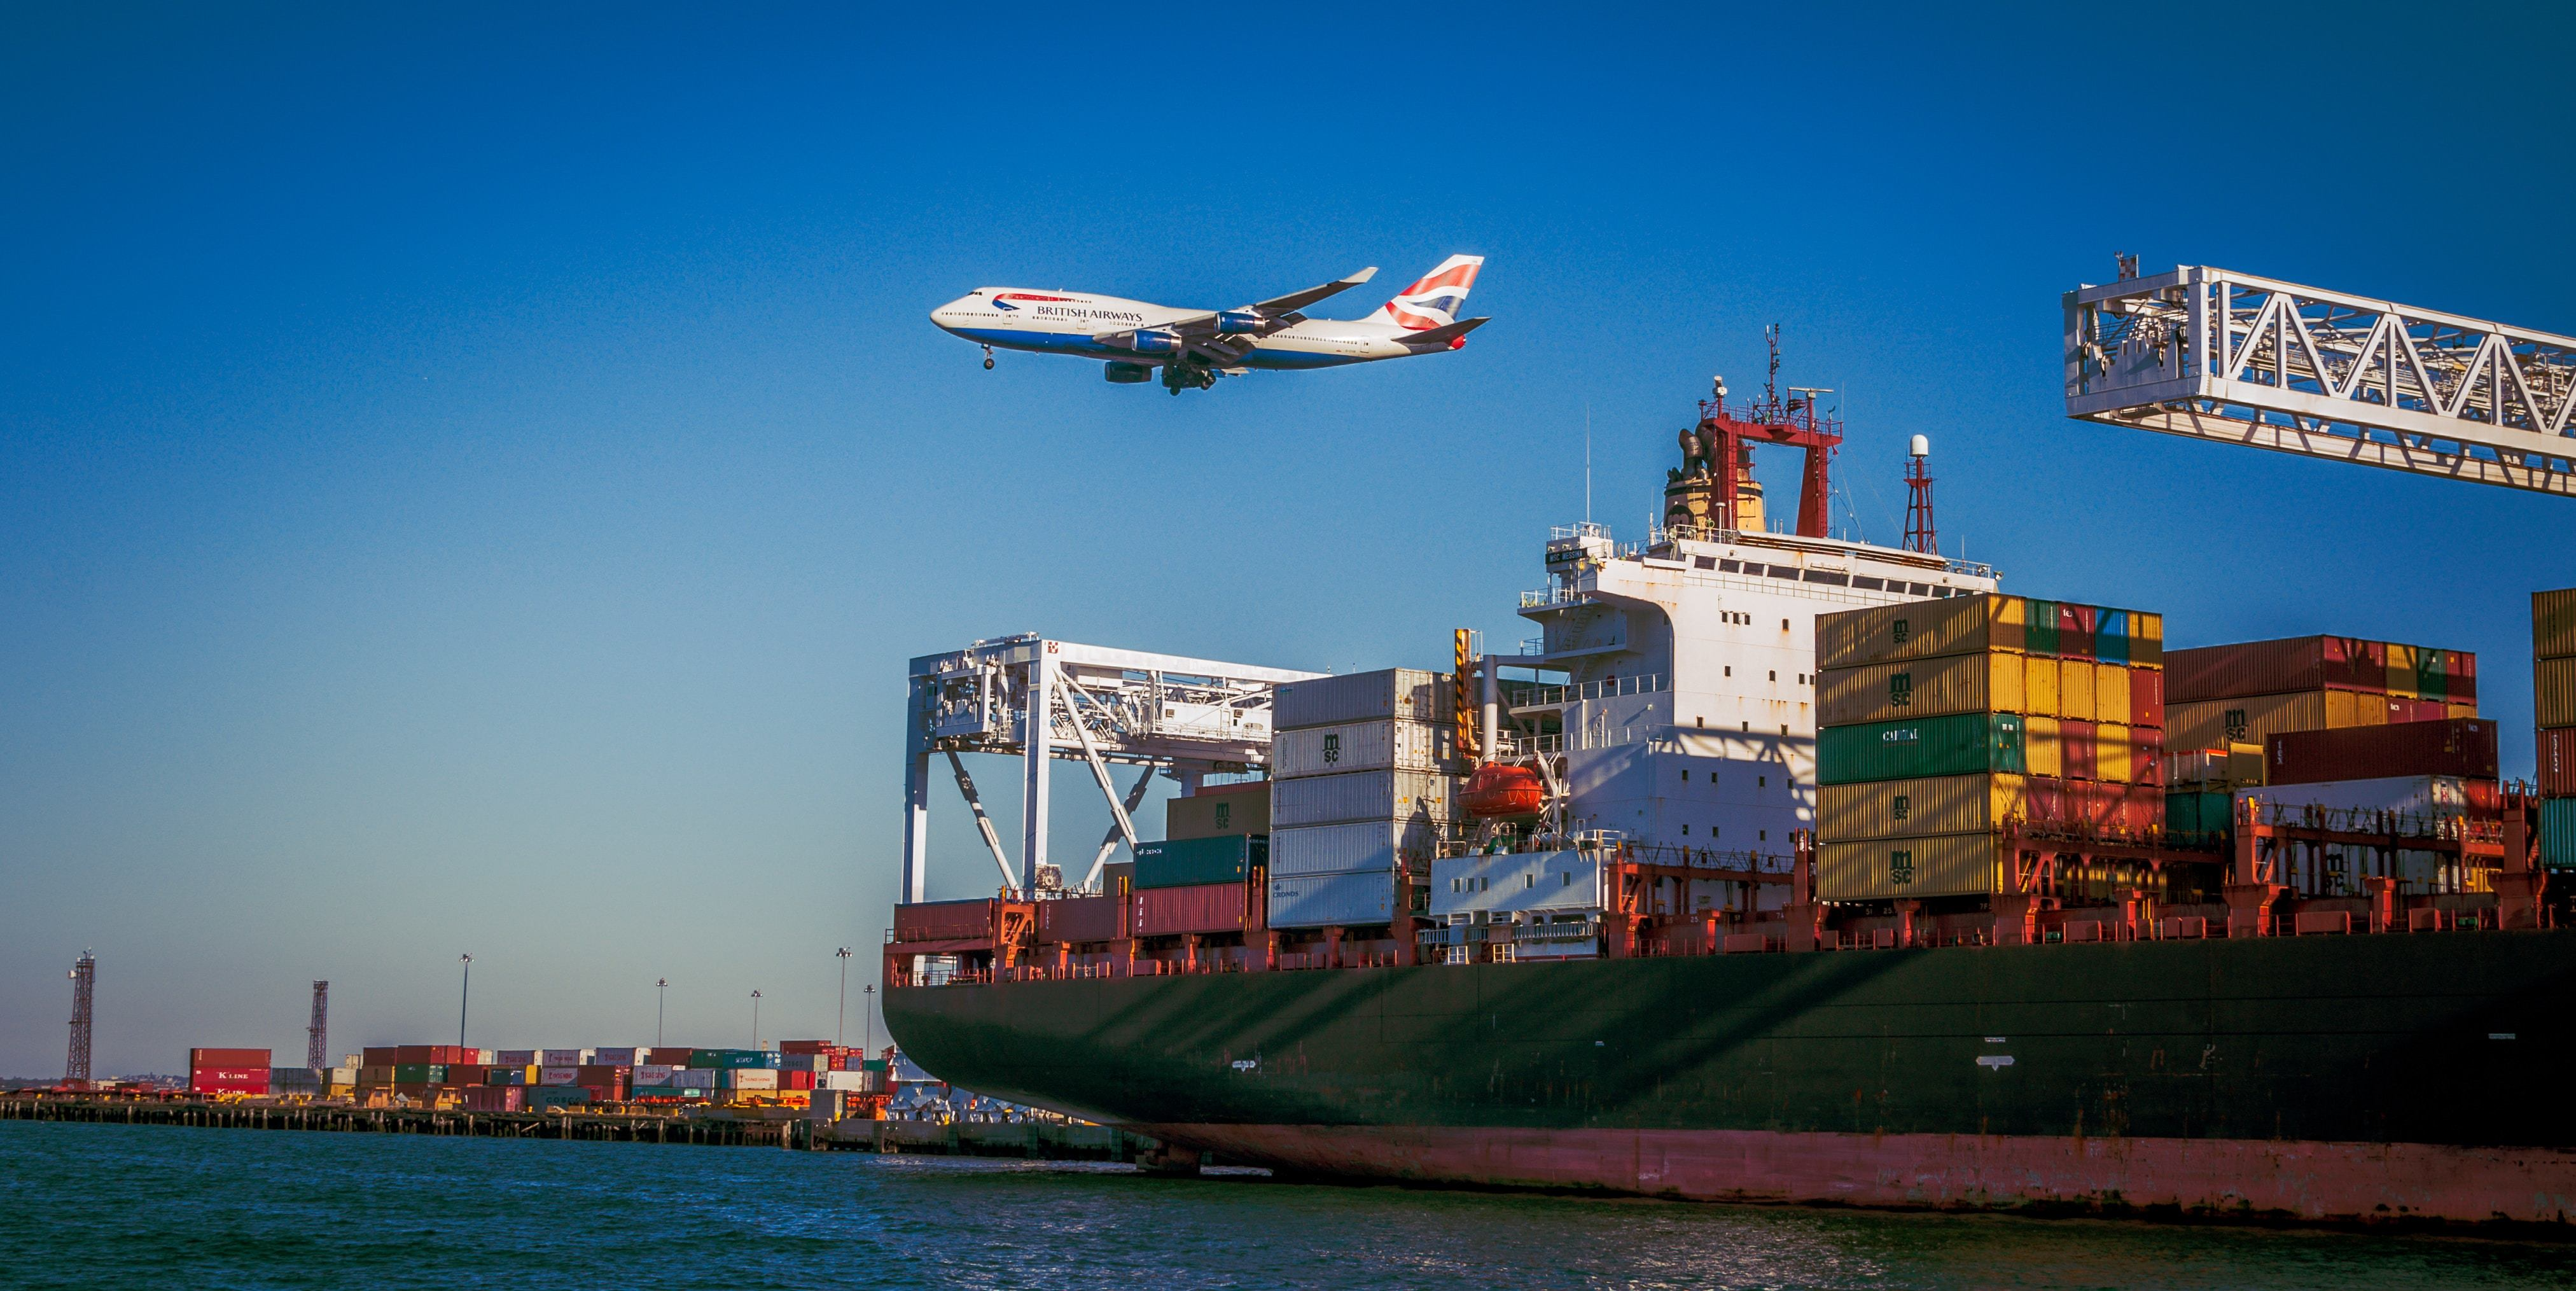 Cargo ship with containers, plane flying in the background